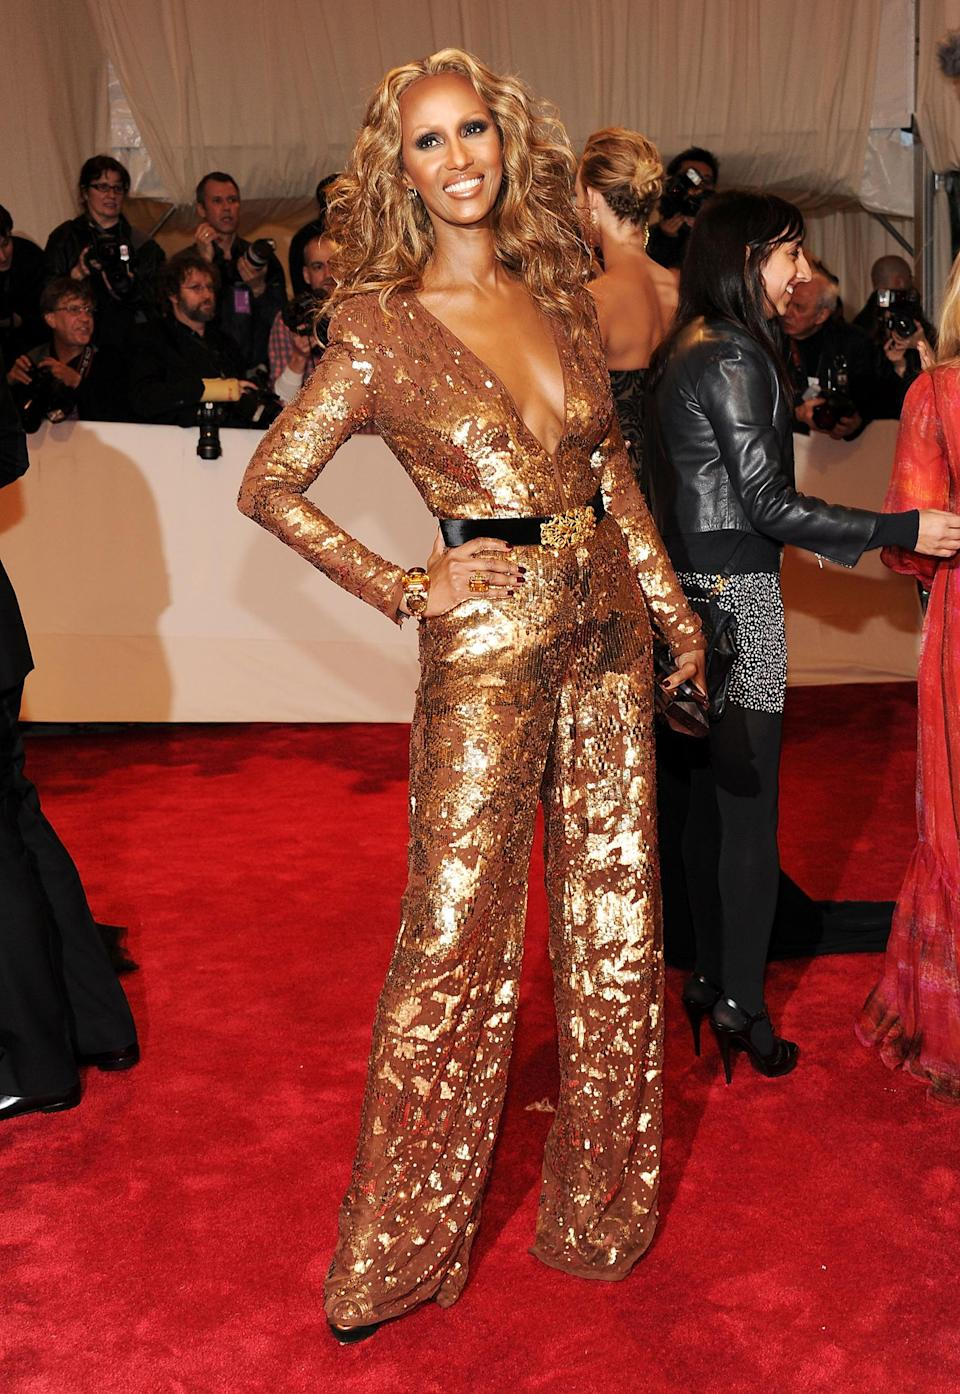 <p>Stella McCartney had a hand in creating this seriously sparkly jumpsuit for Iman's appearance at the 2011 Met Gala. (Photo: Larry Busacca/Getty Images) </p>